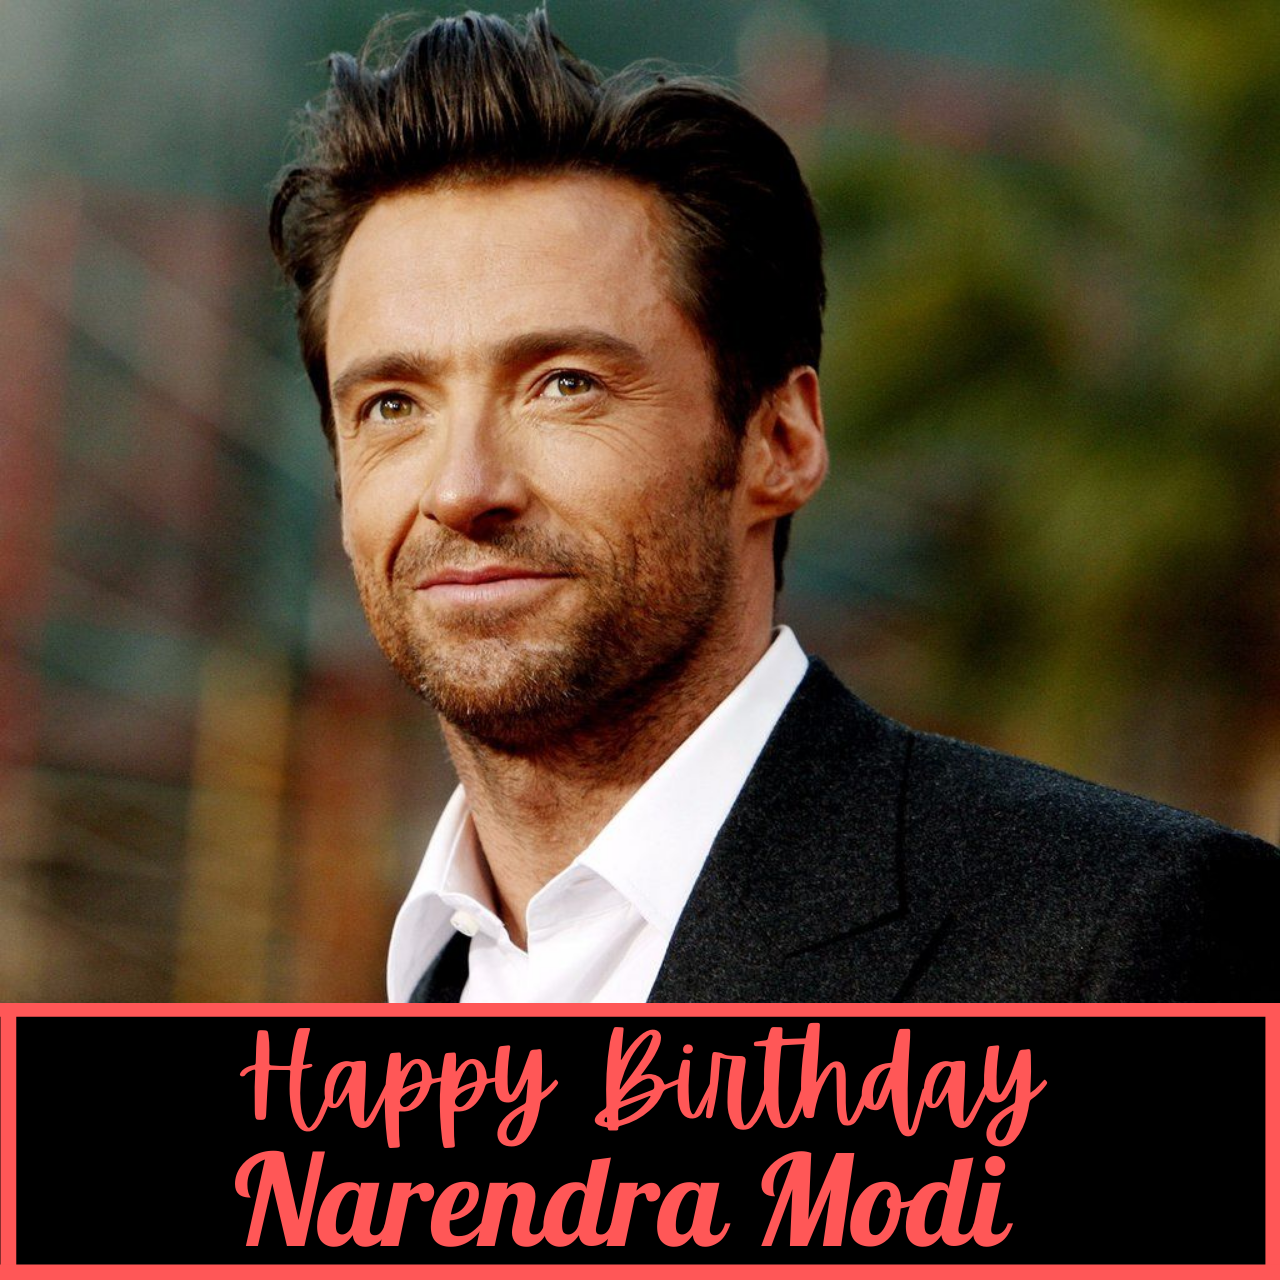 """Happy Birthday Hugh Jackman Messages, Meme, GIFs, Wishes, Images, and Greetings to greet our """"Wolverine"""""""